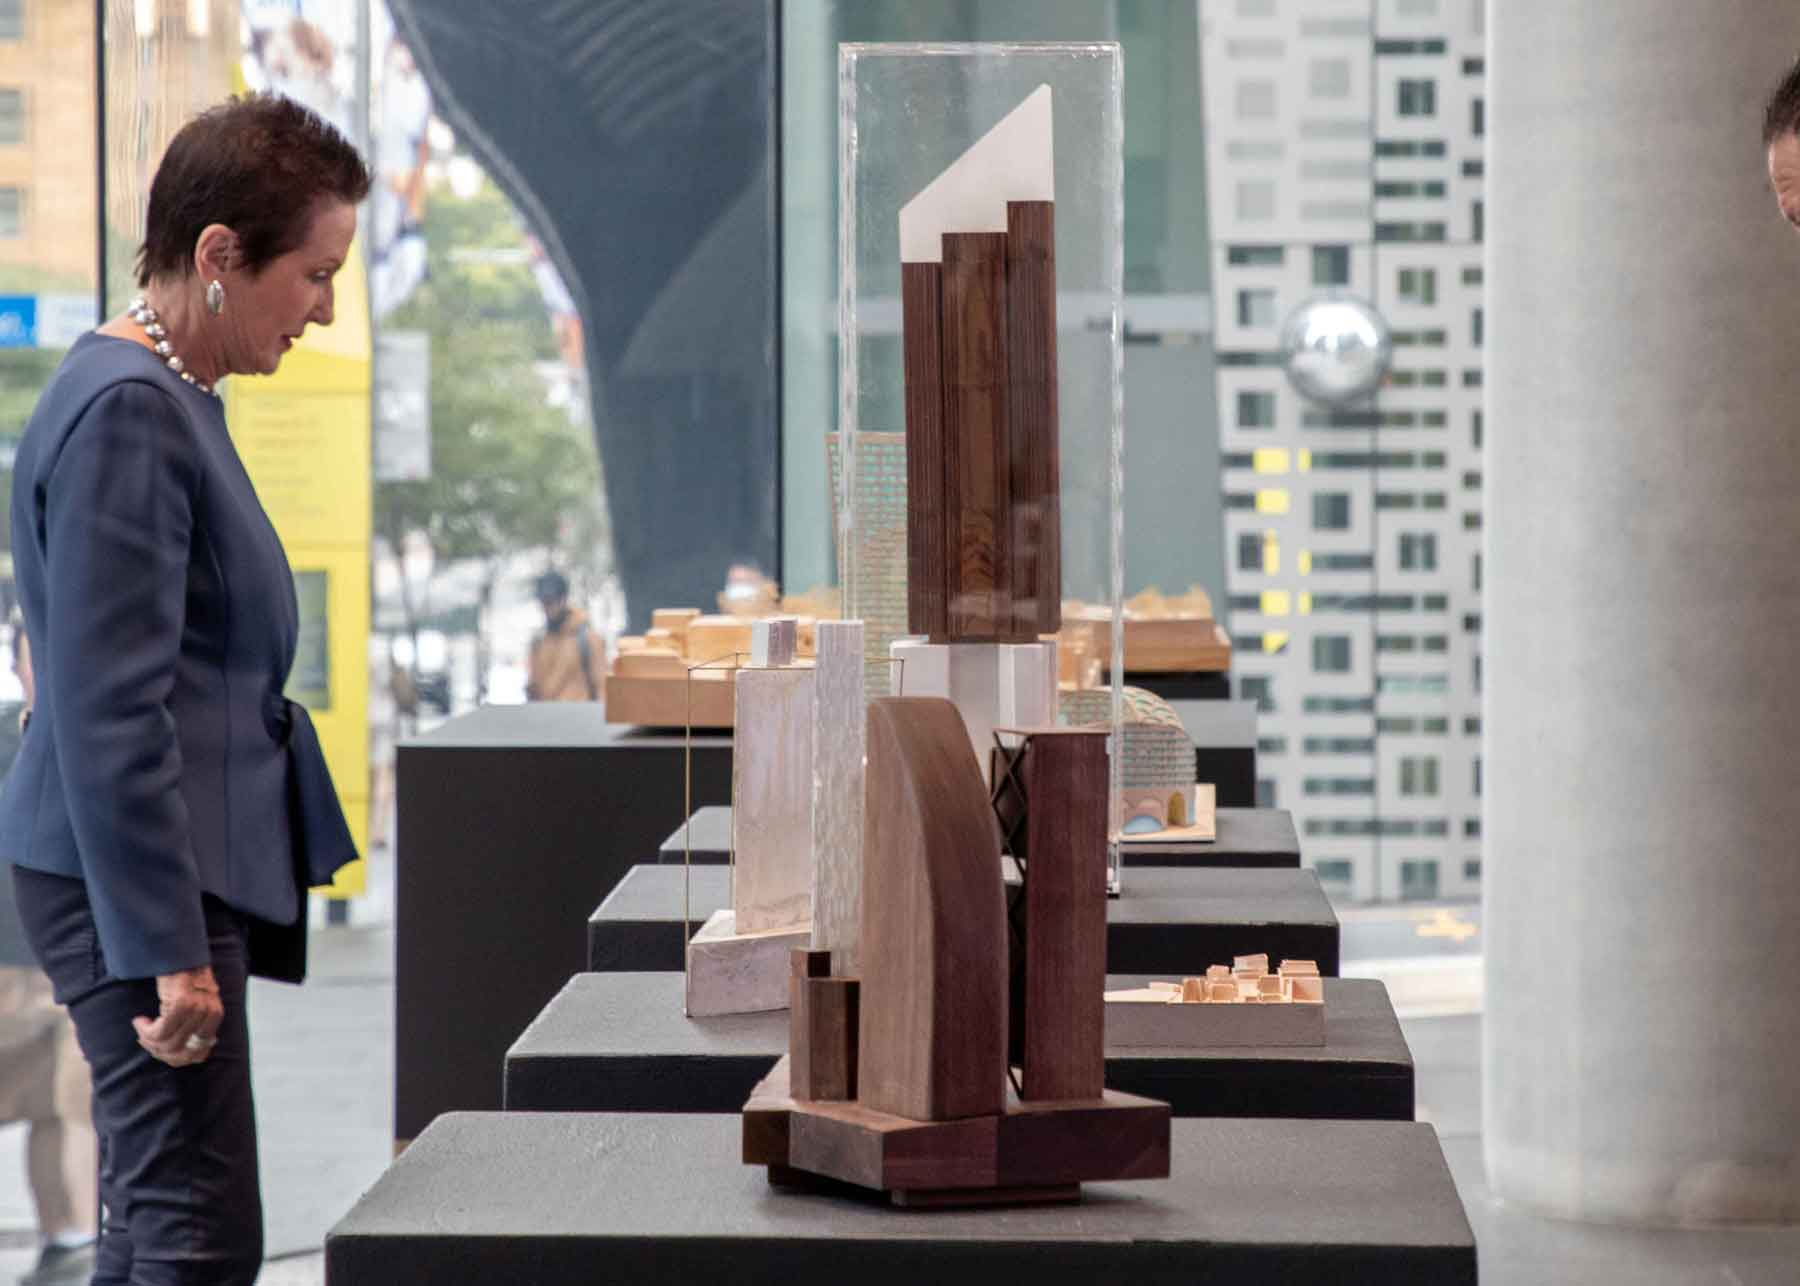 Architectural Exhibition, LOST Urban Propositions and Concepts, Sydney, 2020